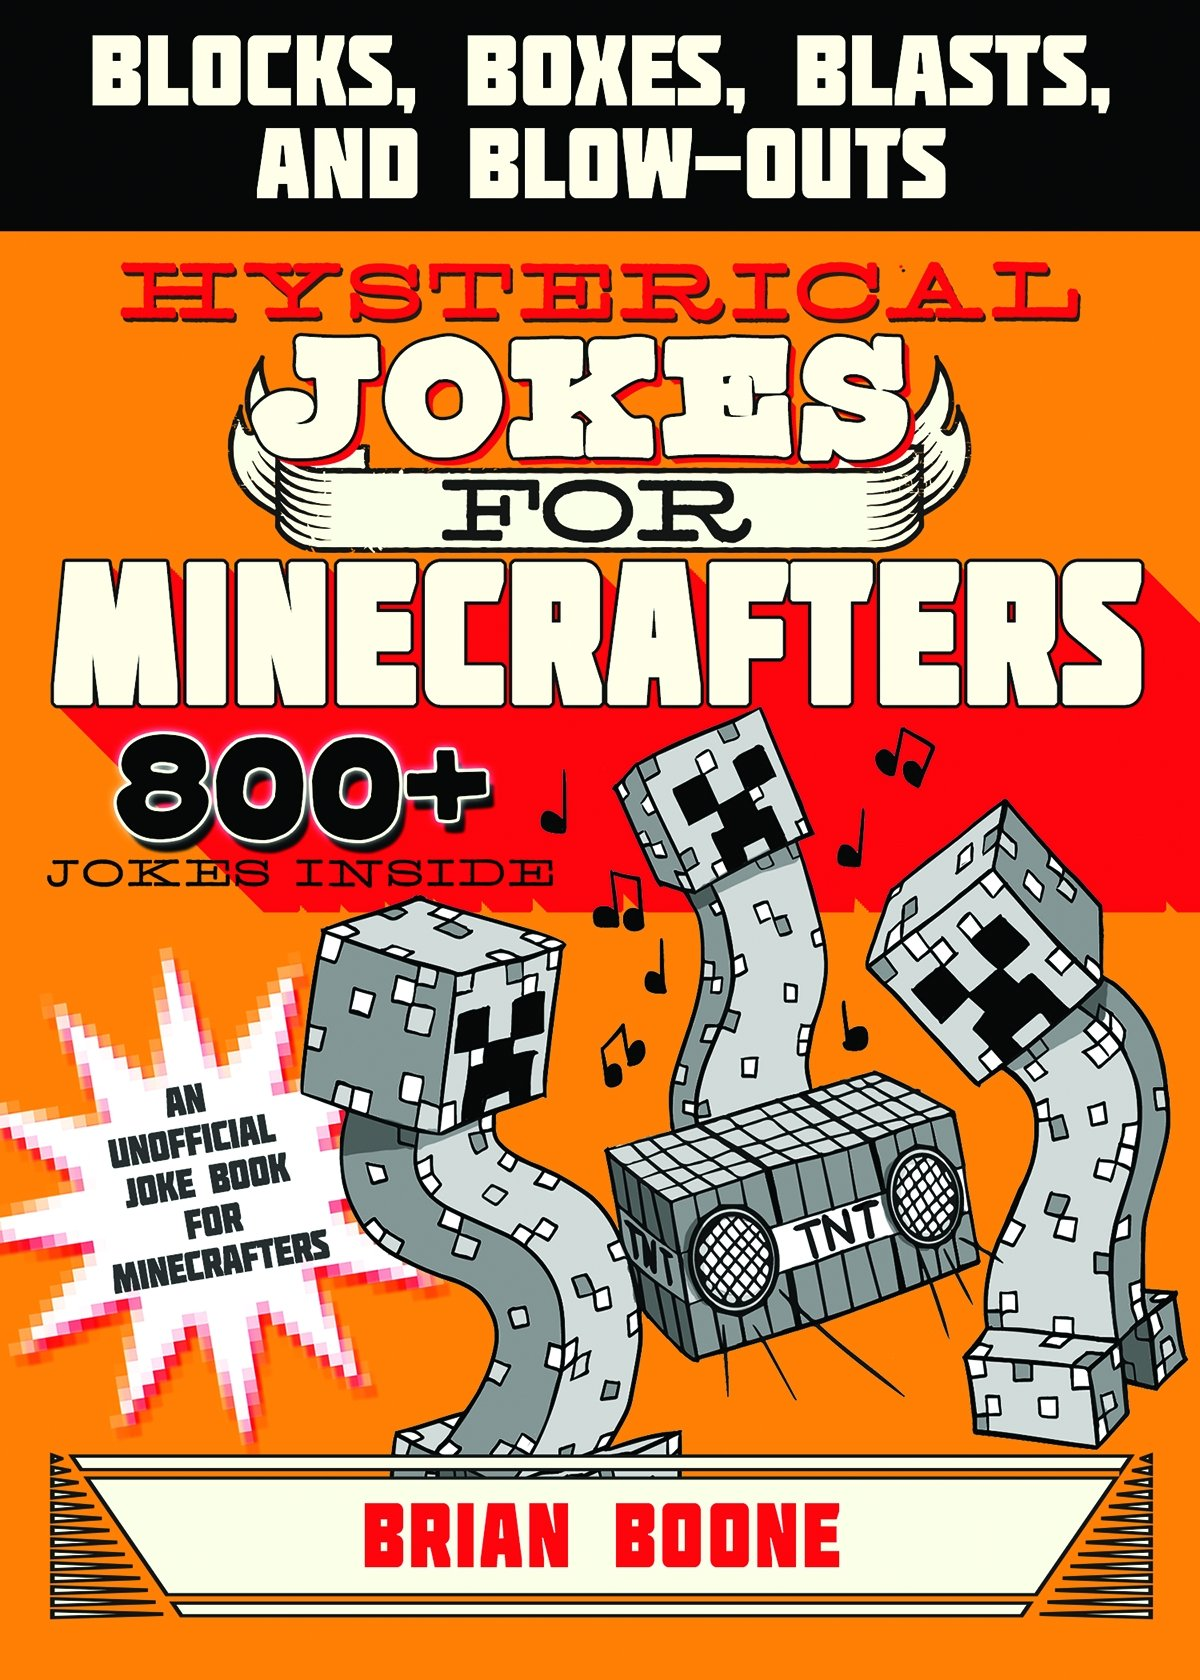 Download Hysterical Jokes for Minecrafters: Blocks, Boxes, Blasts, and Blow-Outs ebook